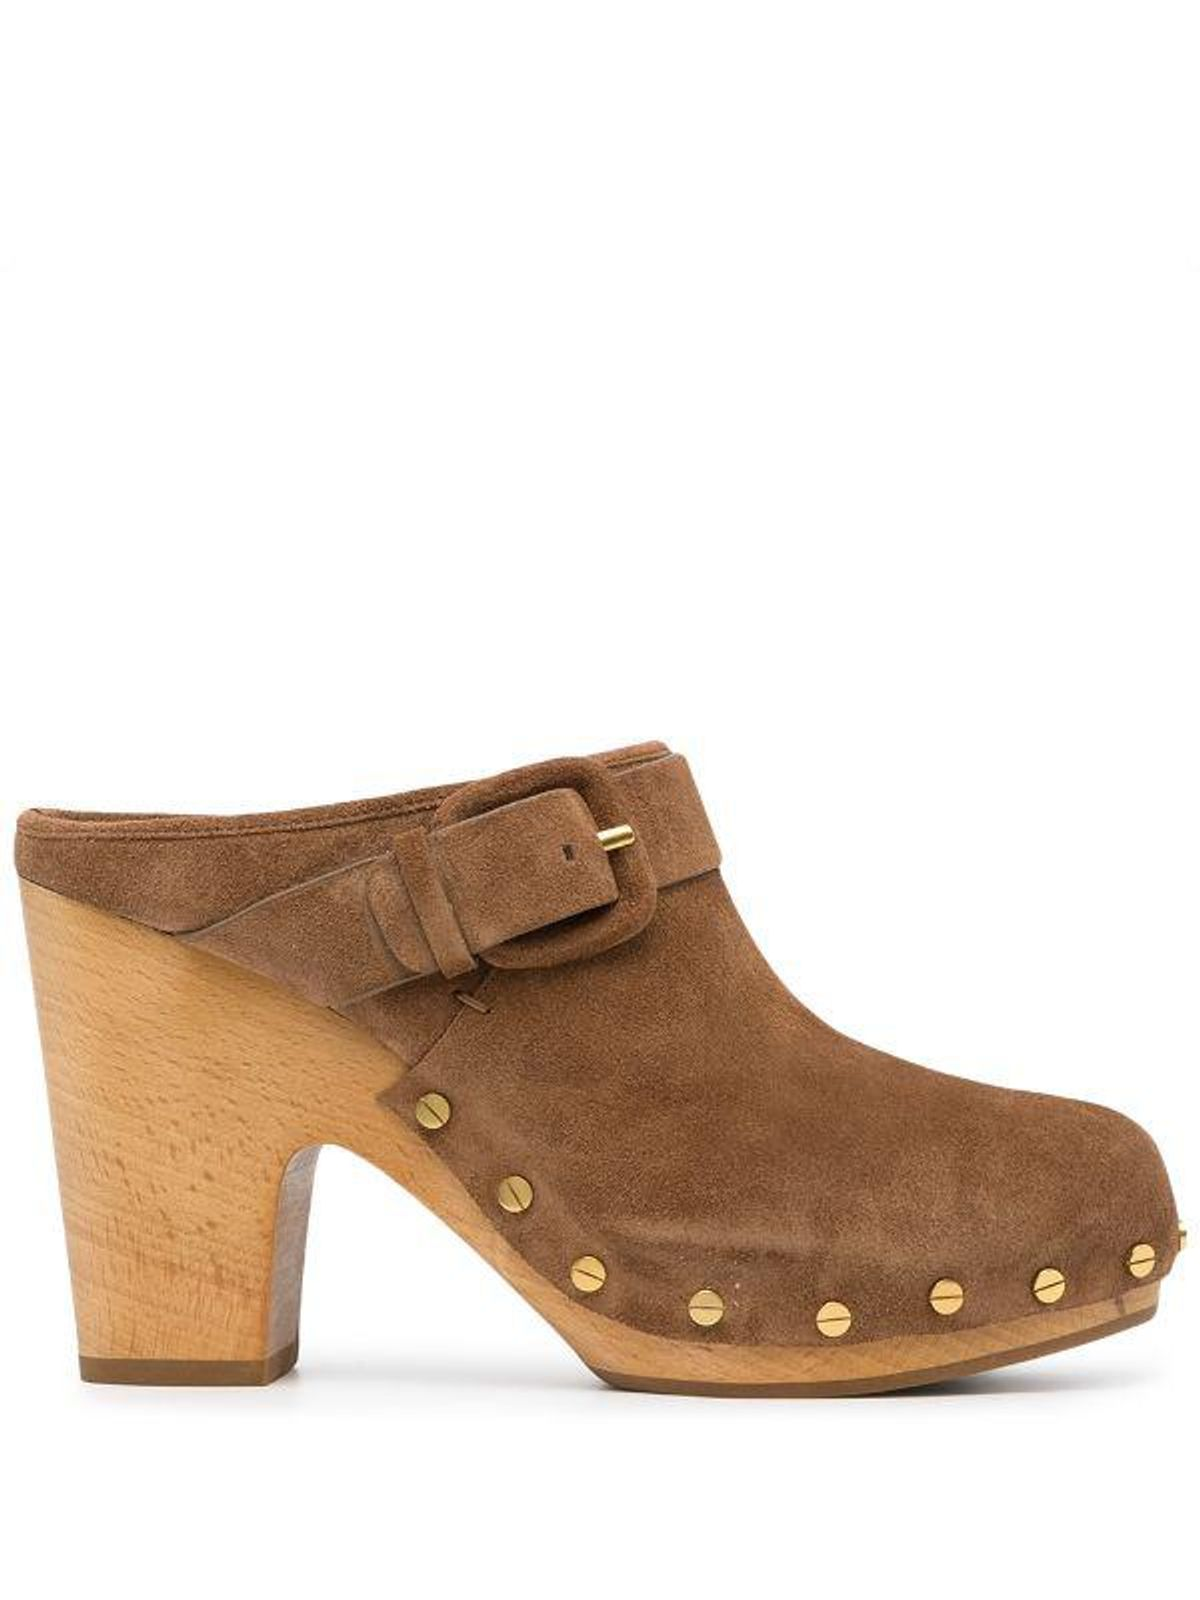 Buckle Detail Heeled Clogs